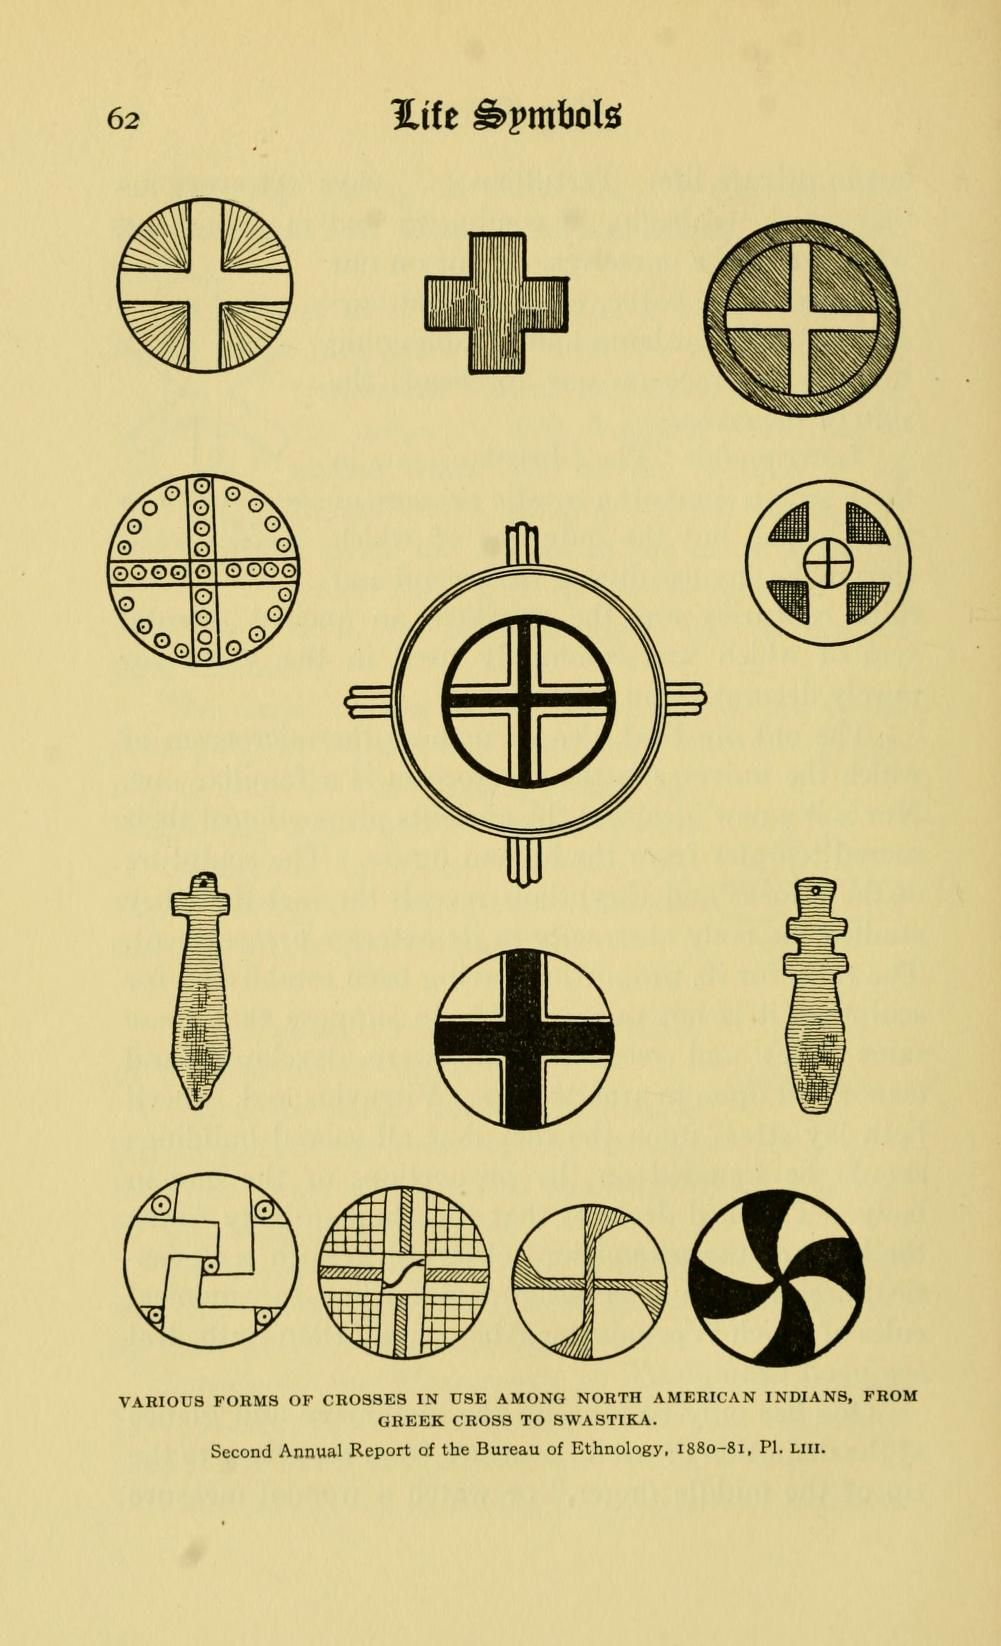 Various forms of crosses in use among north american indians from various forms of crosses in use among north american indians from greek cross to swastika religious symbolsancient biocorpaavc